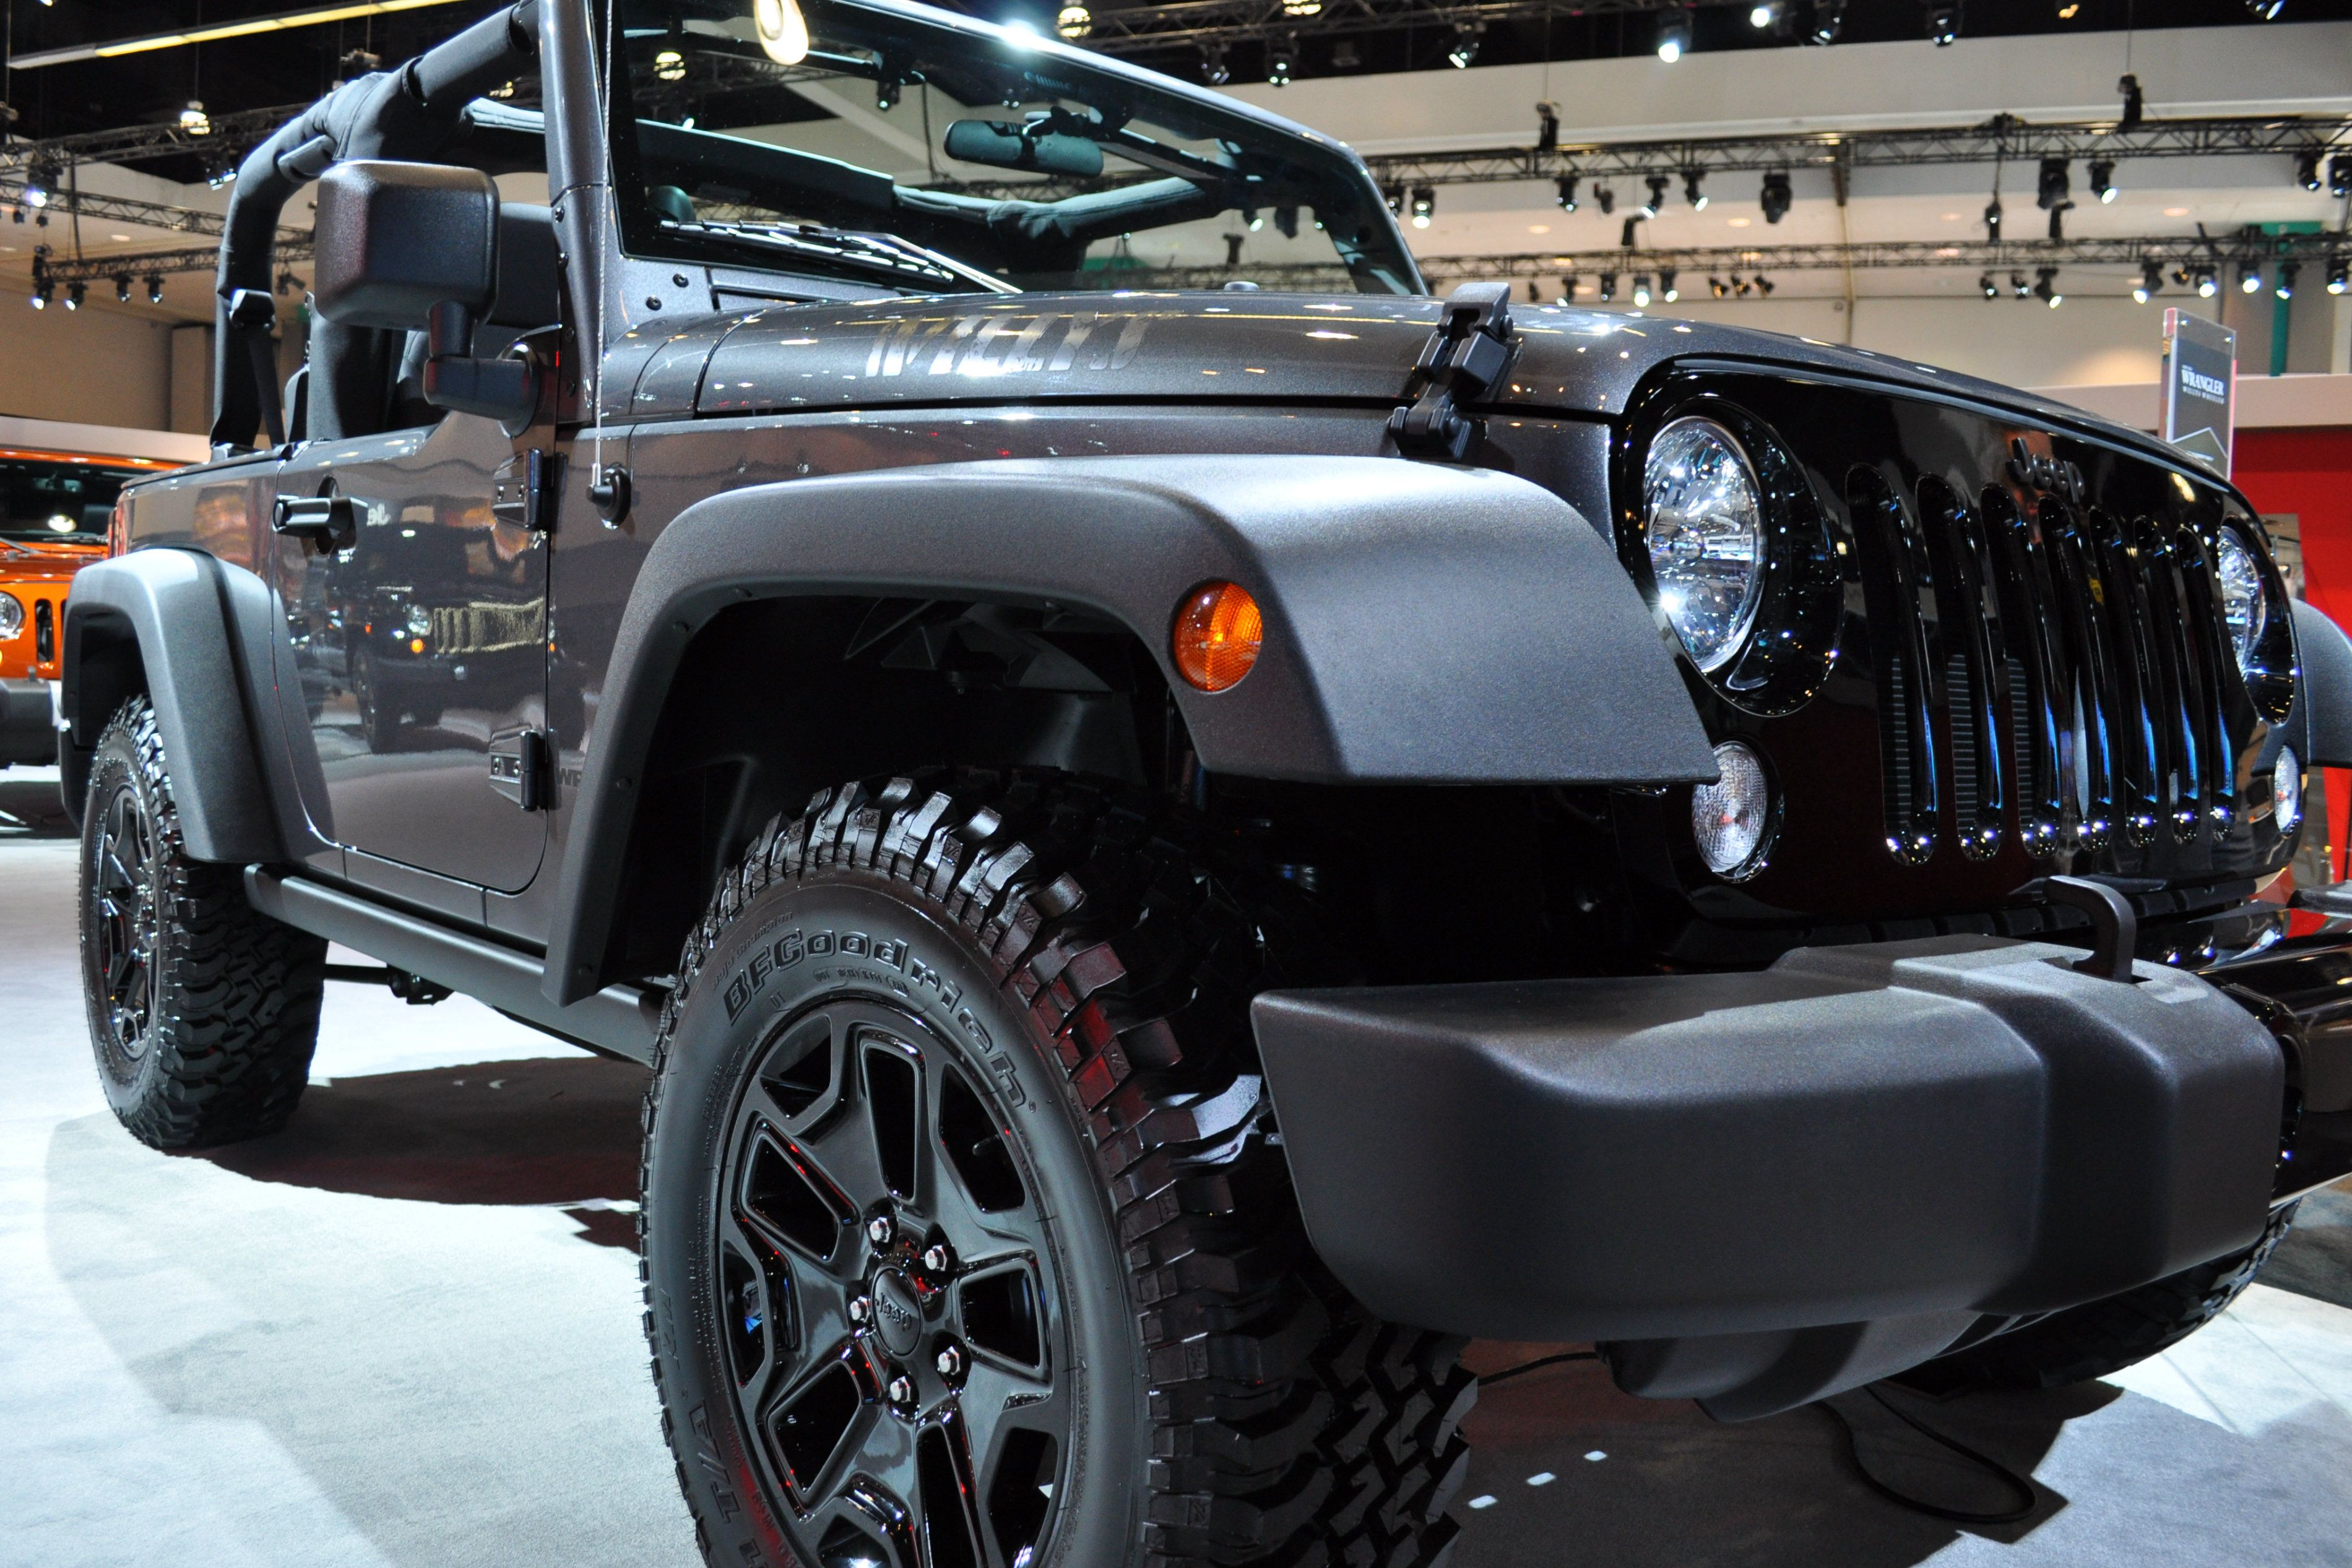 2015 jeep wrangler unlimited interior engine of 2015 2016 jeep wrangler unlimited my future jeep pinterest